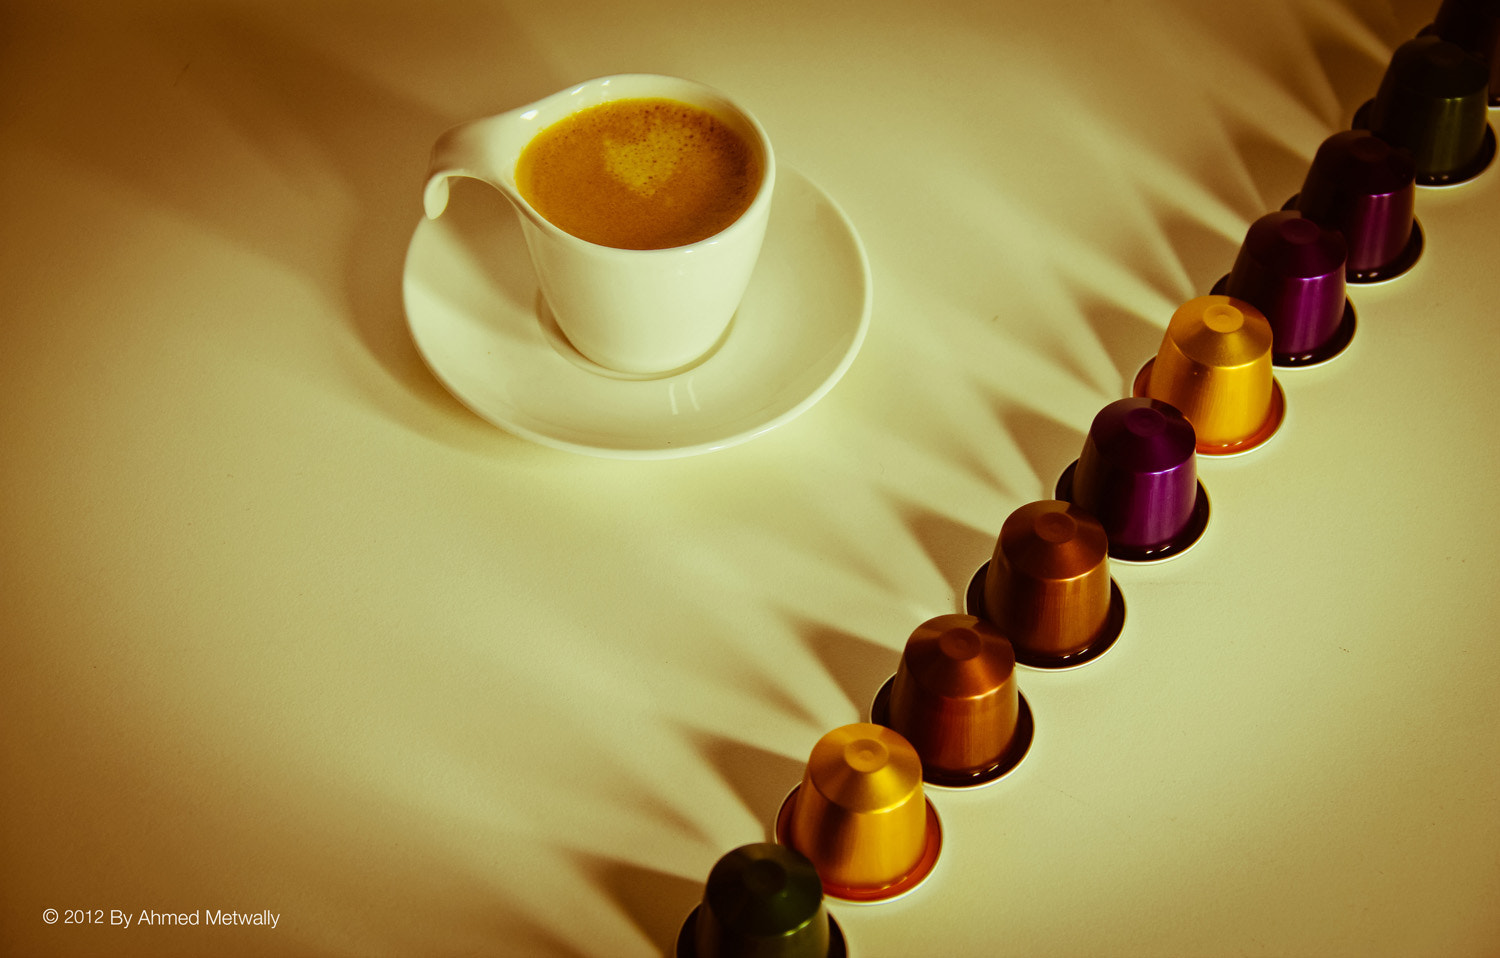 Photograph Nespresso Coffee by Ahmed Metwally on 500px